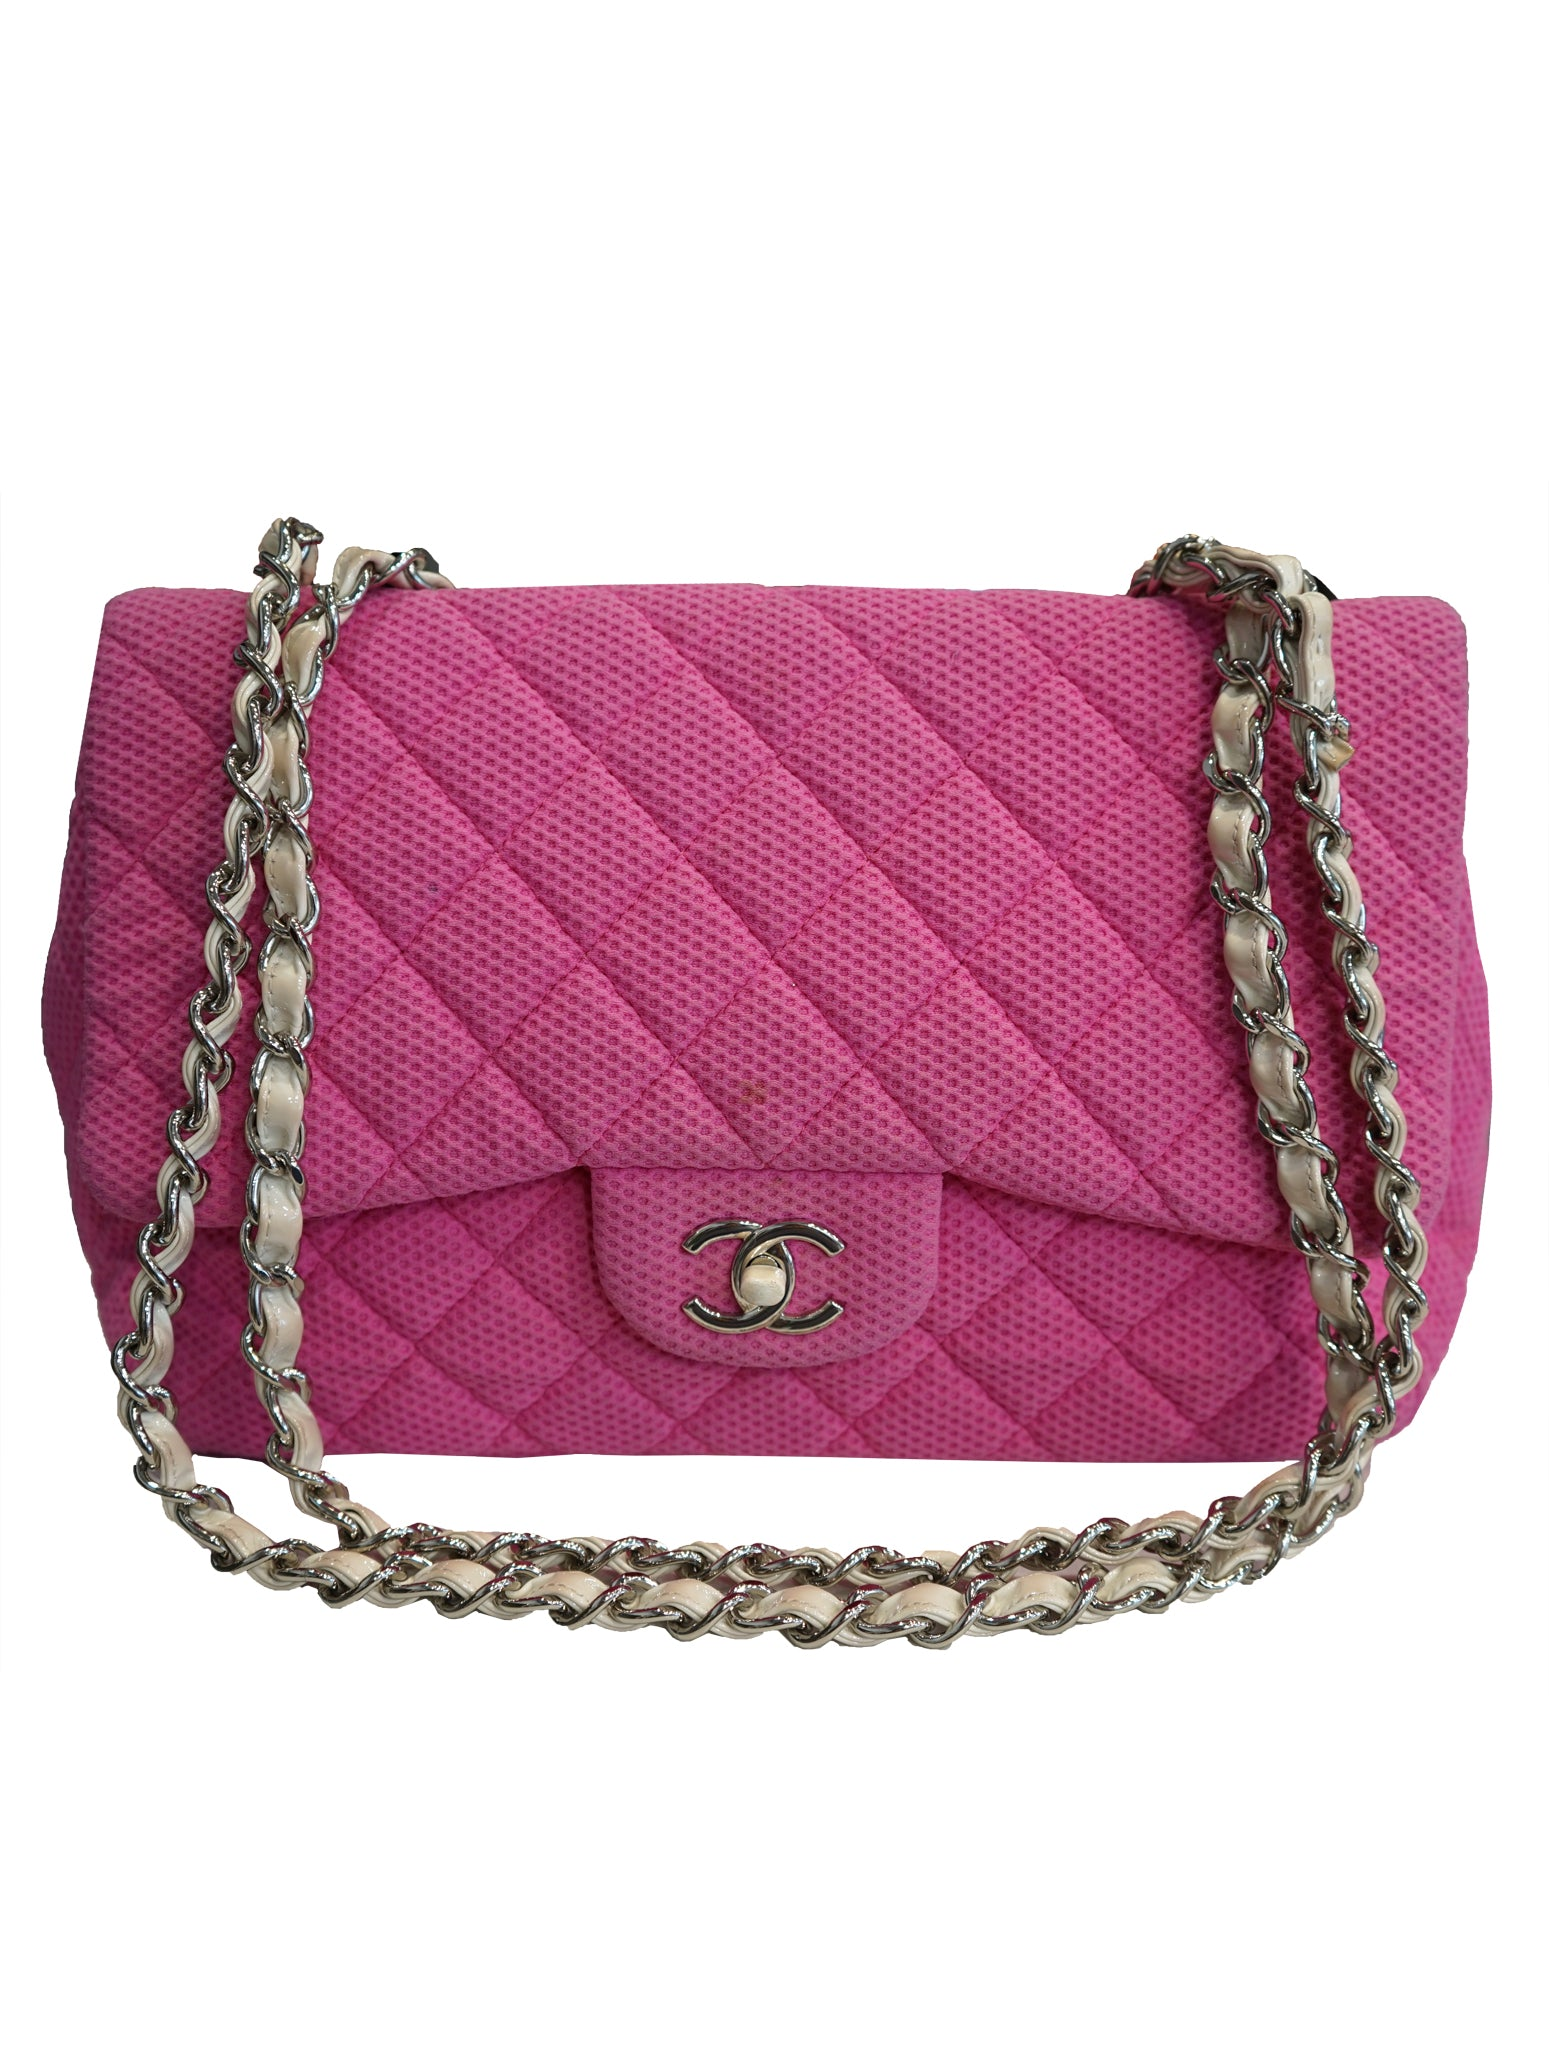 2a46c7384607 RE-LOVED LADIES DESIGNERS CHANEL QUILTED FABRIC FLAP BAG ...